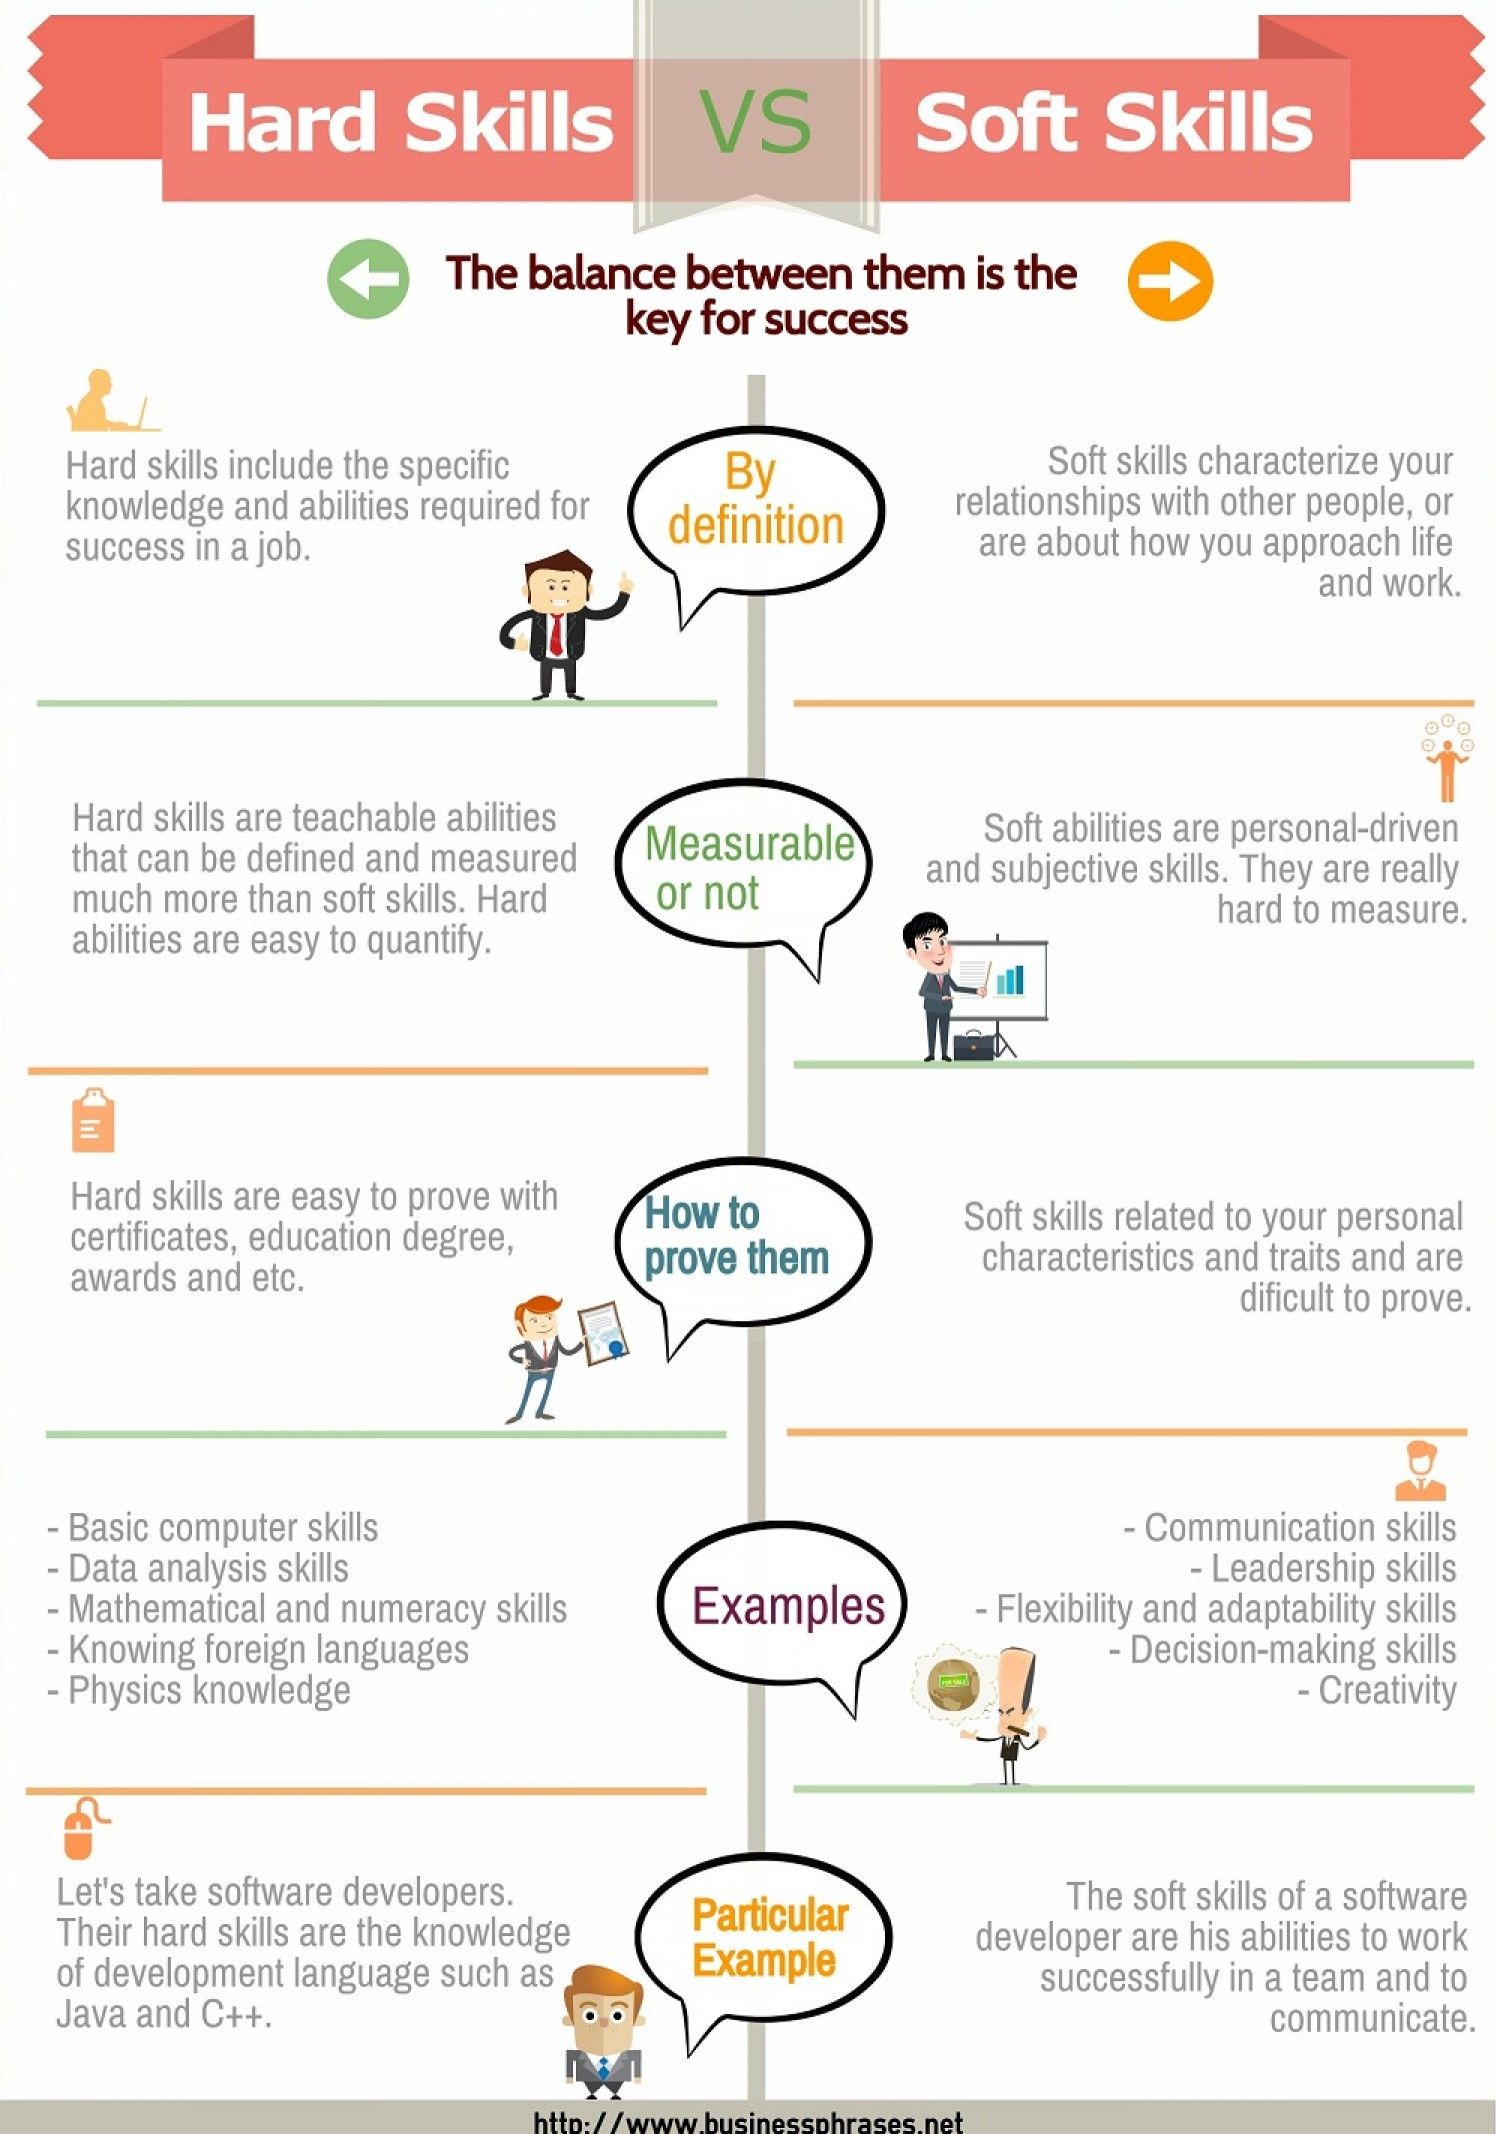 Soft Skills Vs Hard Skills Infographic